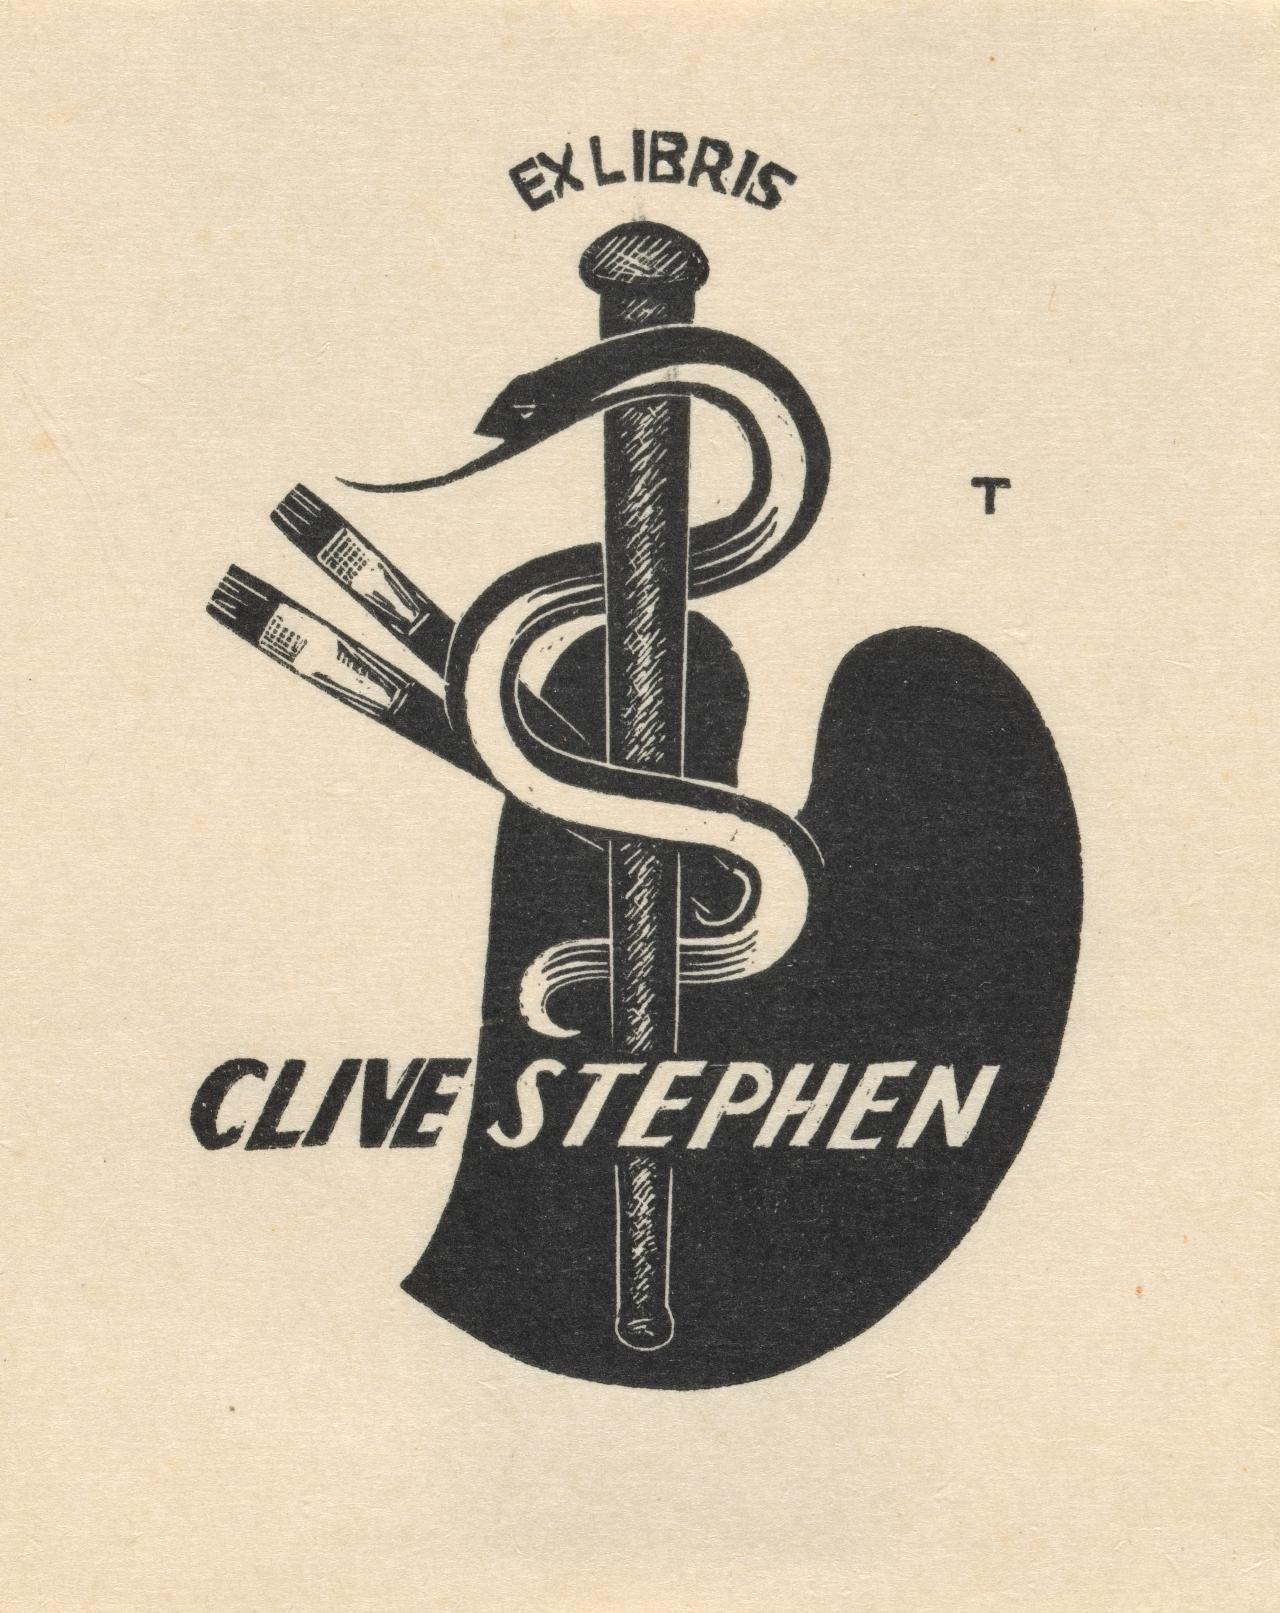 Bookplate: Clive Stephen